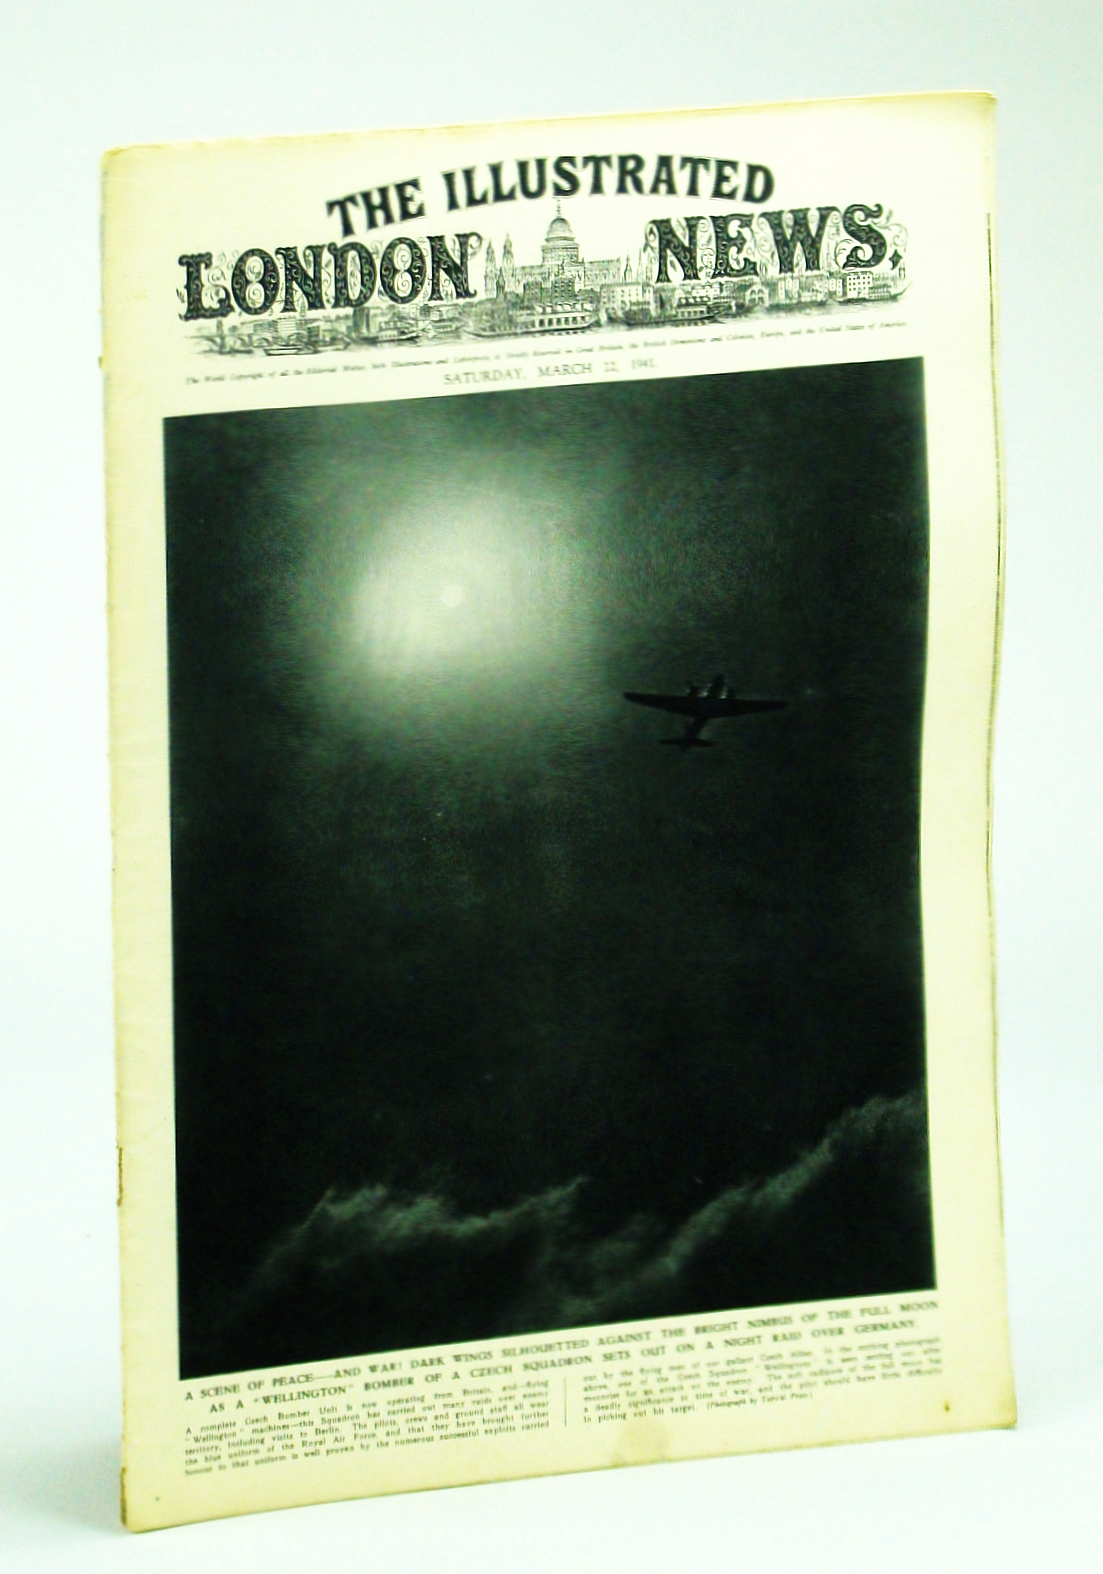 Image for The Illustrated London News, Saturday, March [Mar.] 22, 1941 -  Keren, Core of Weakening Italian Resistance in Eritrea